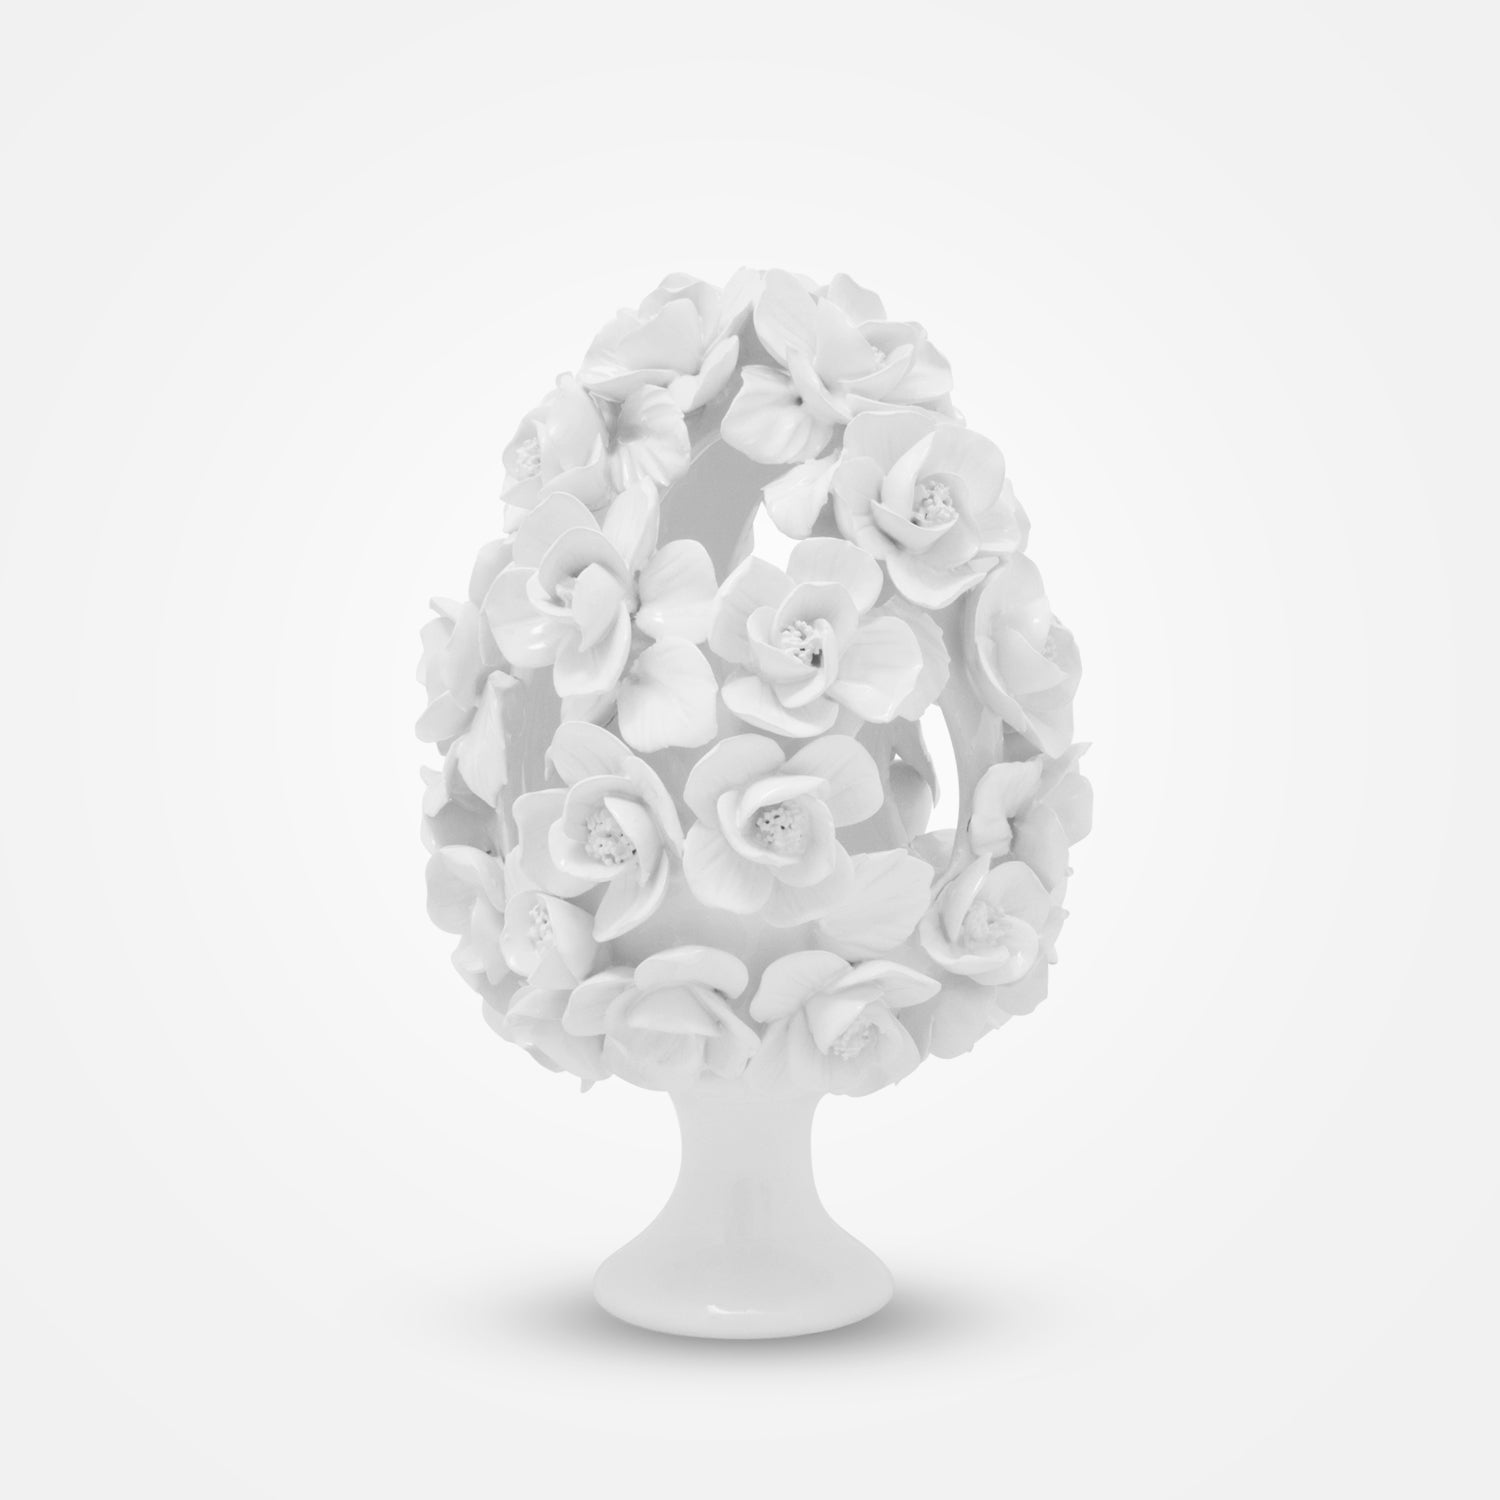 The Enchanting Flowers Ceramic Centerpiece by I. Borbone